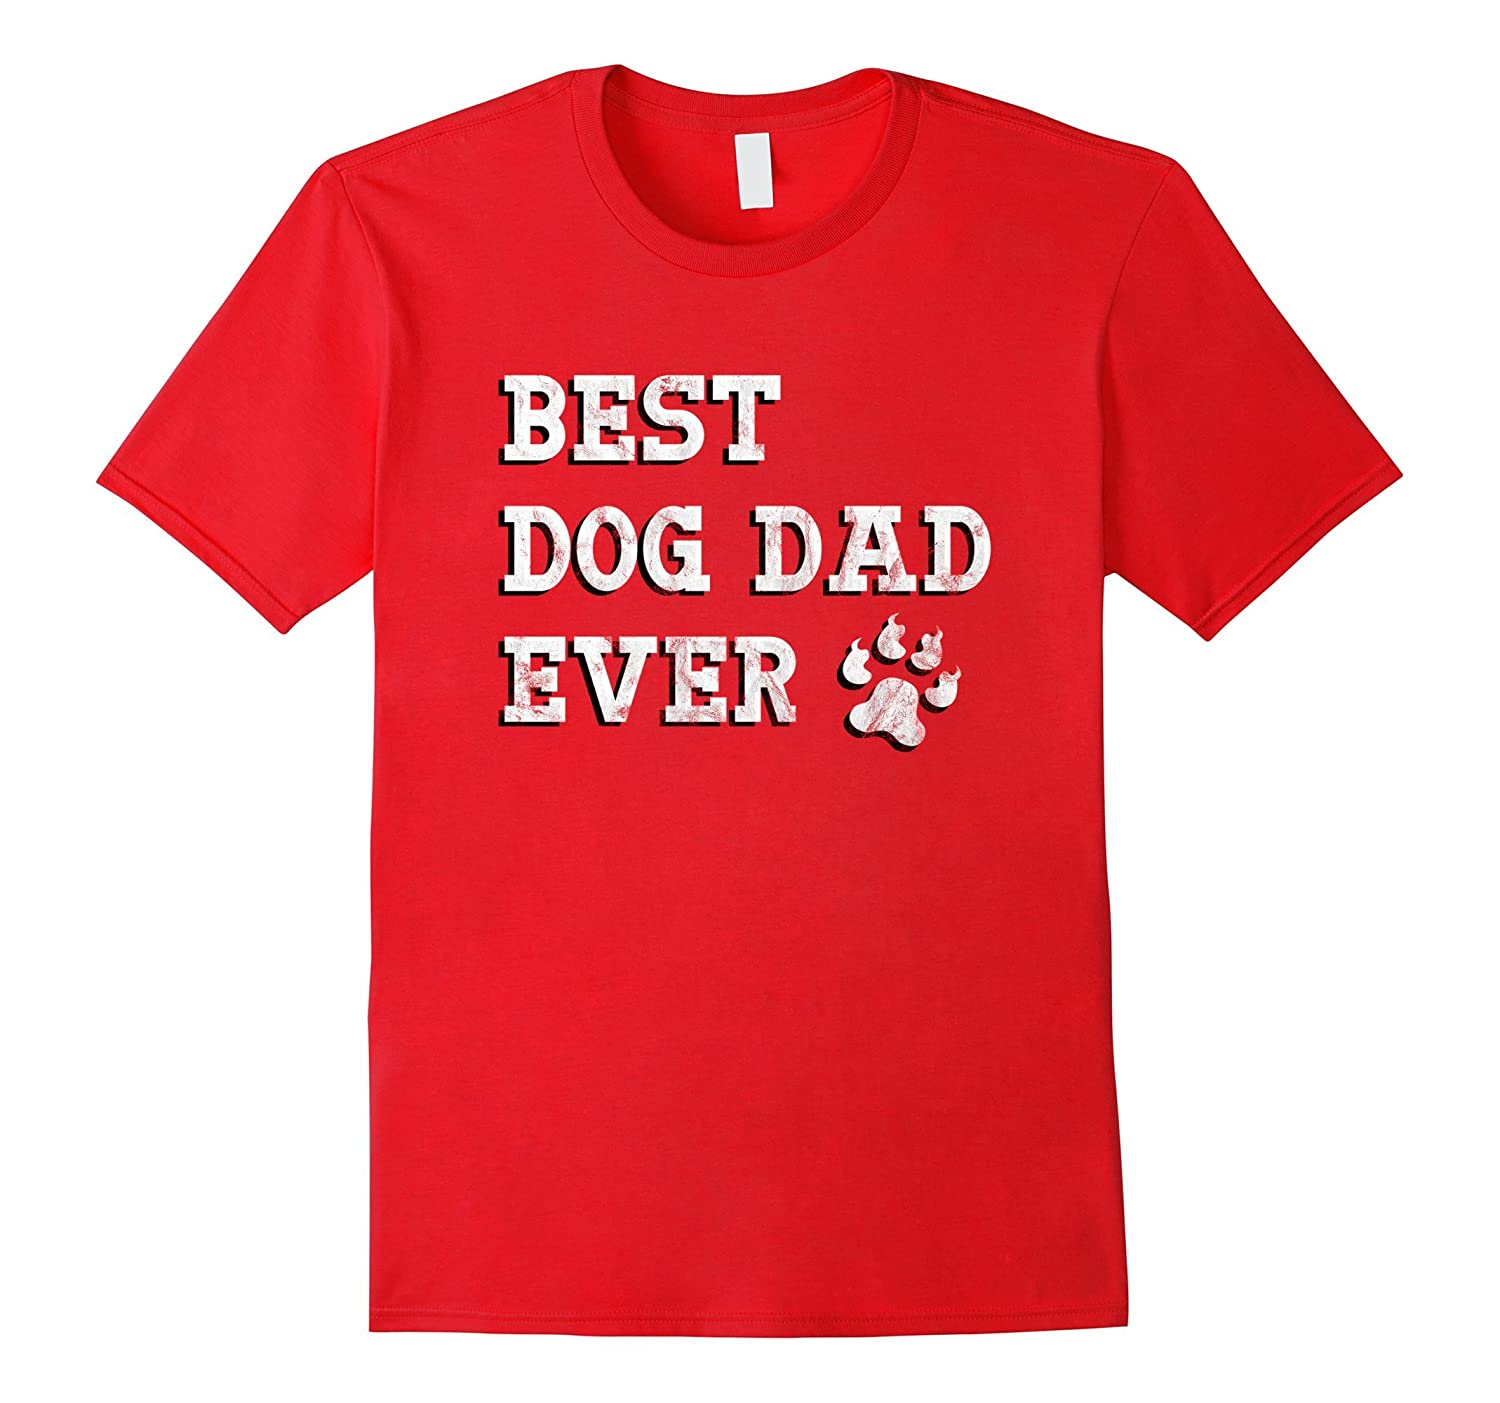 Best Dog Dad Ever Shirt Outfit Dogs Funny Fathers Day Gift